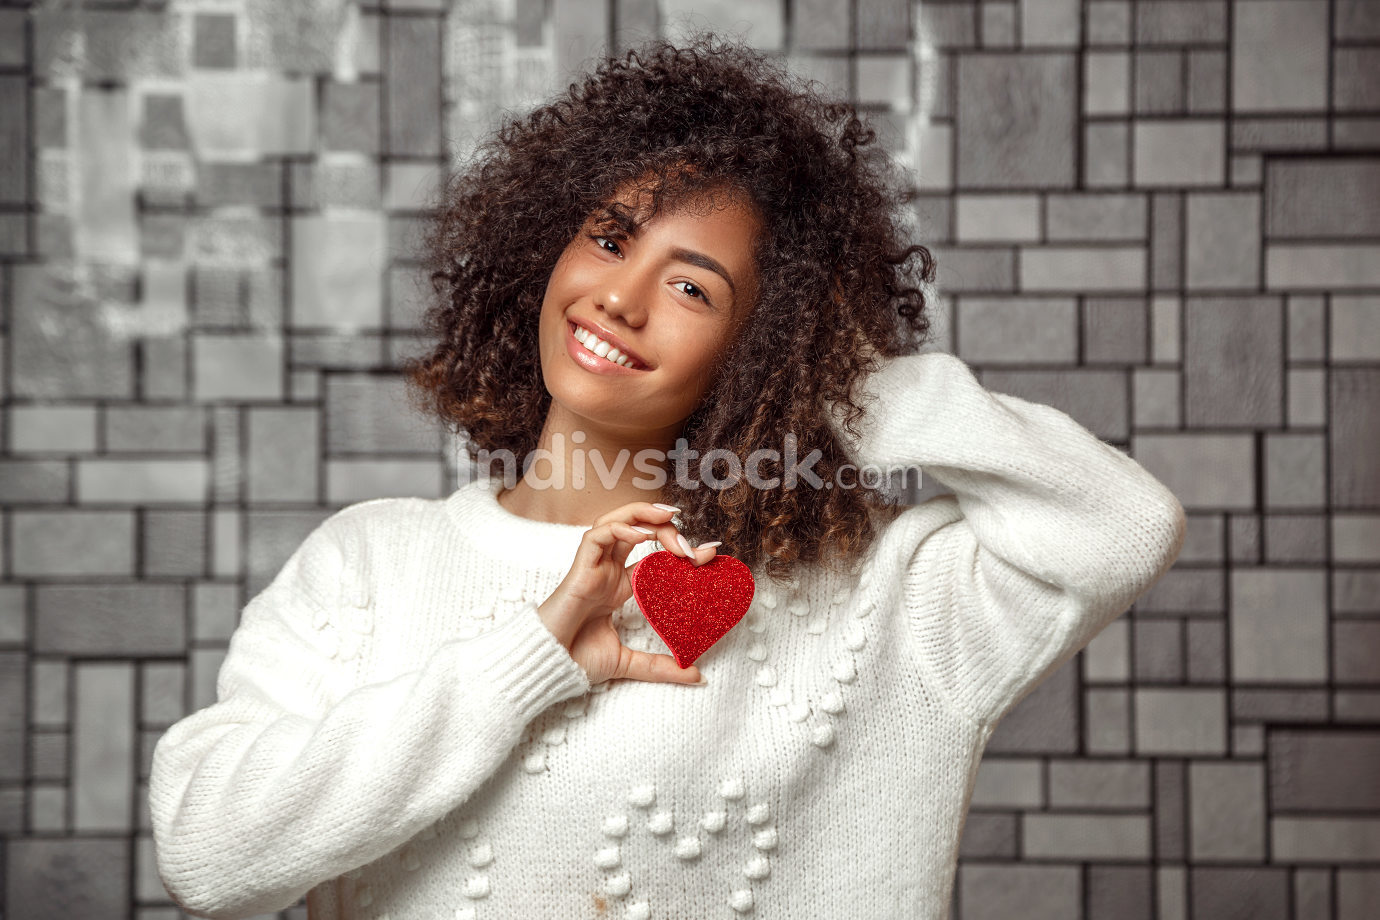 close-up portrait of a young curly-haired African American girl in a white sweater holding a paper heart .  shallow depth of focus